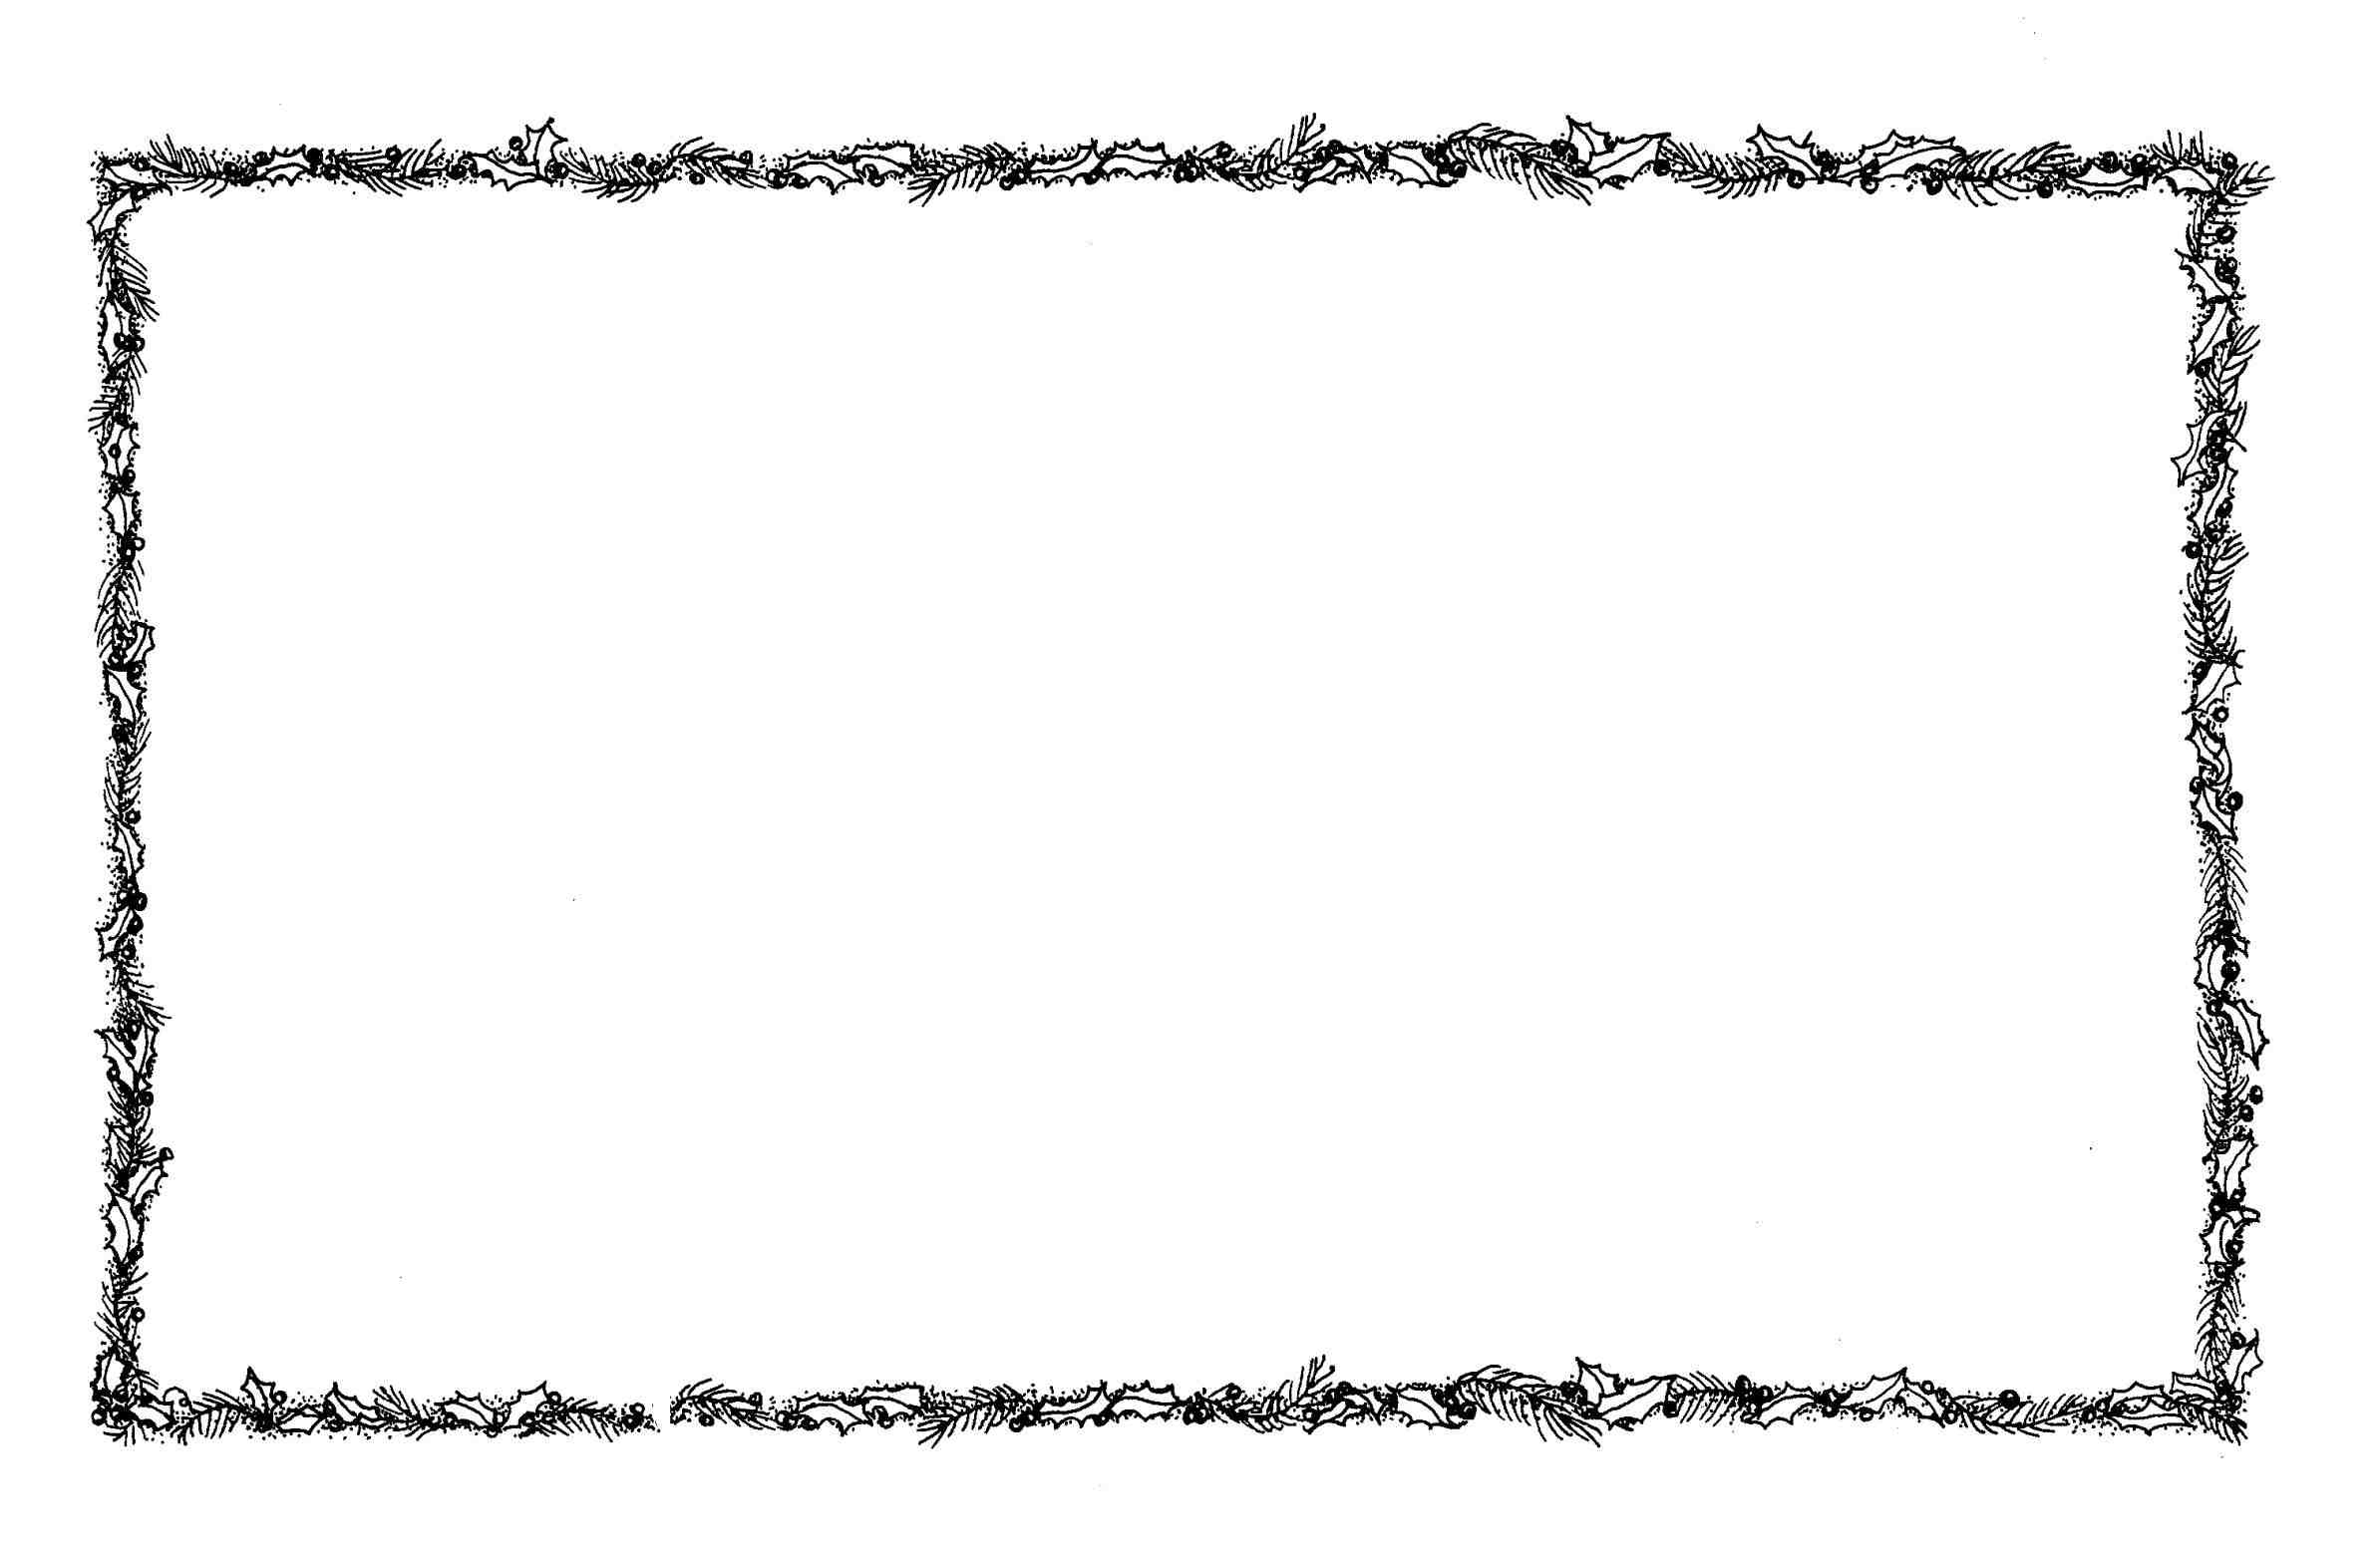 2387x1568 Christmas Letter Border Black And White Cheminee.website